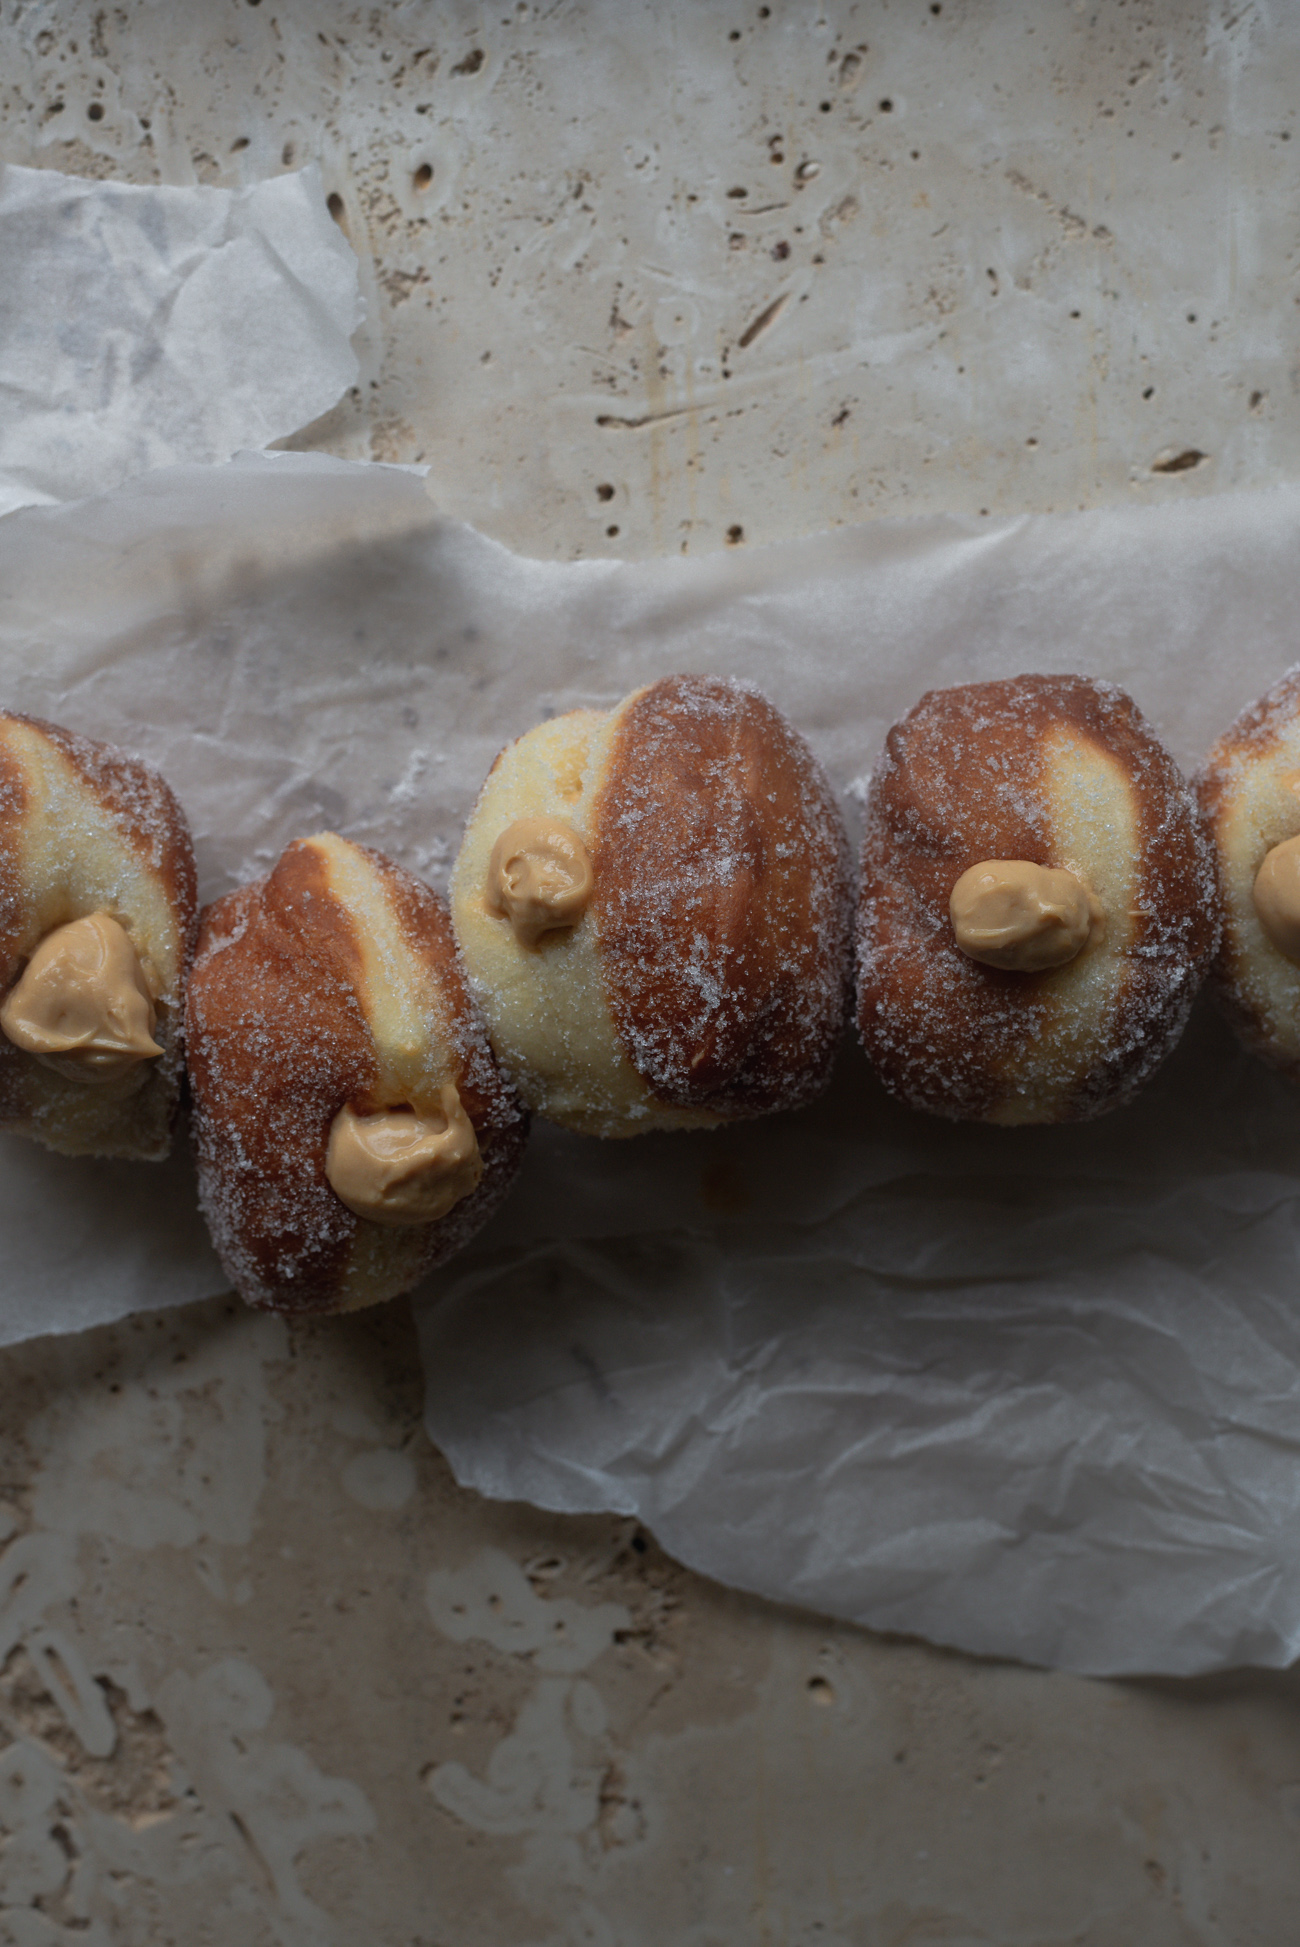 Grey-Sea-Salt-Caramel-Brioche-Doughnuts-10-of-11.jpg